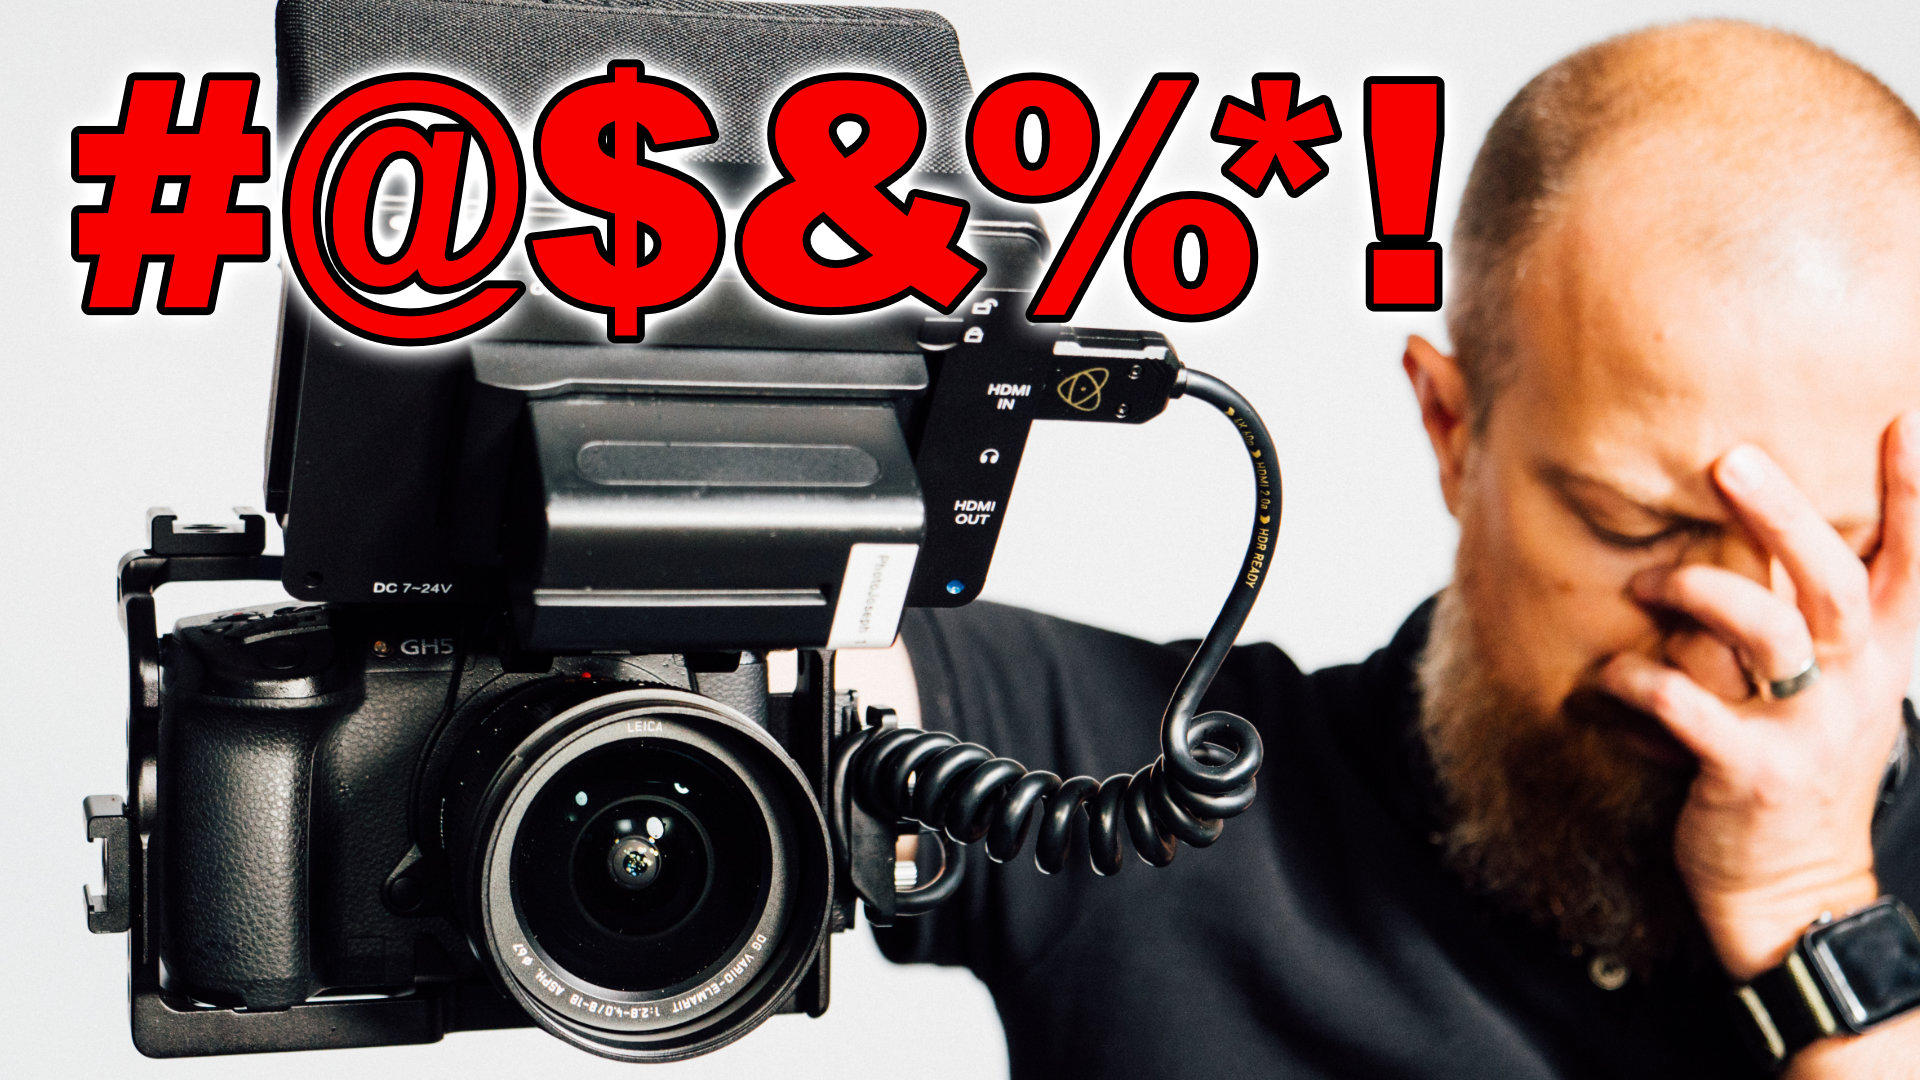 Do NOT Do This With Your GH5!! ▶︎ One BIG, FAT, Hairy Mistake